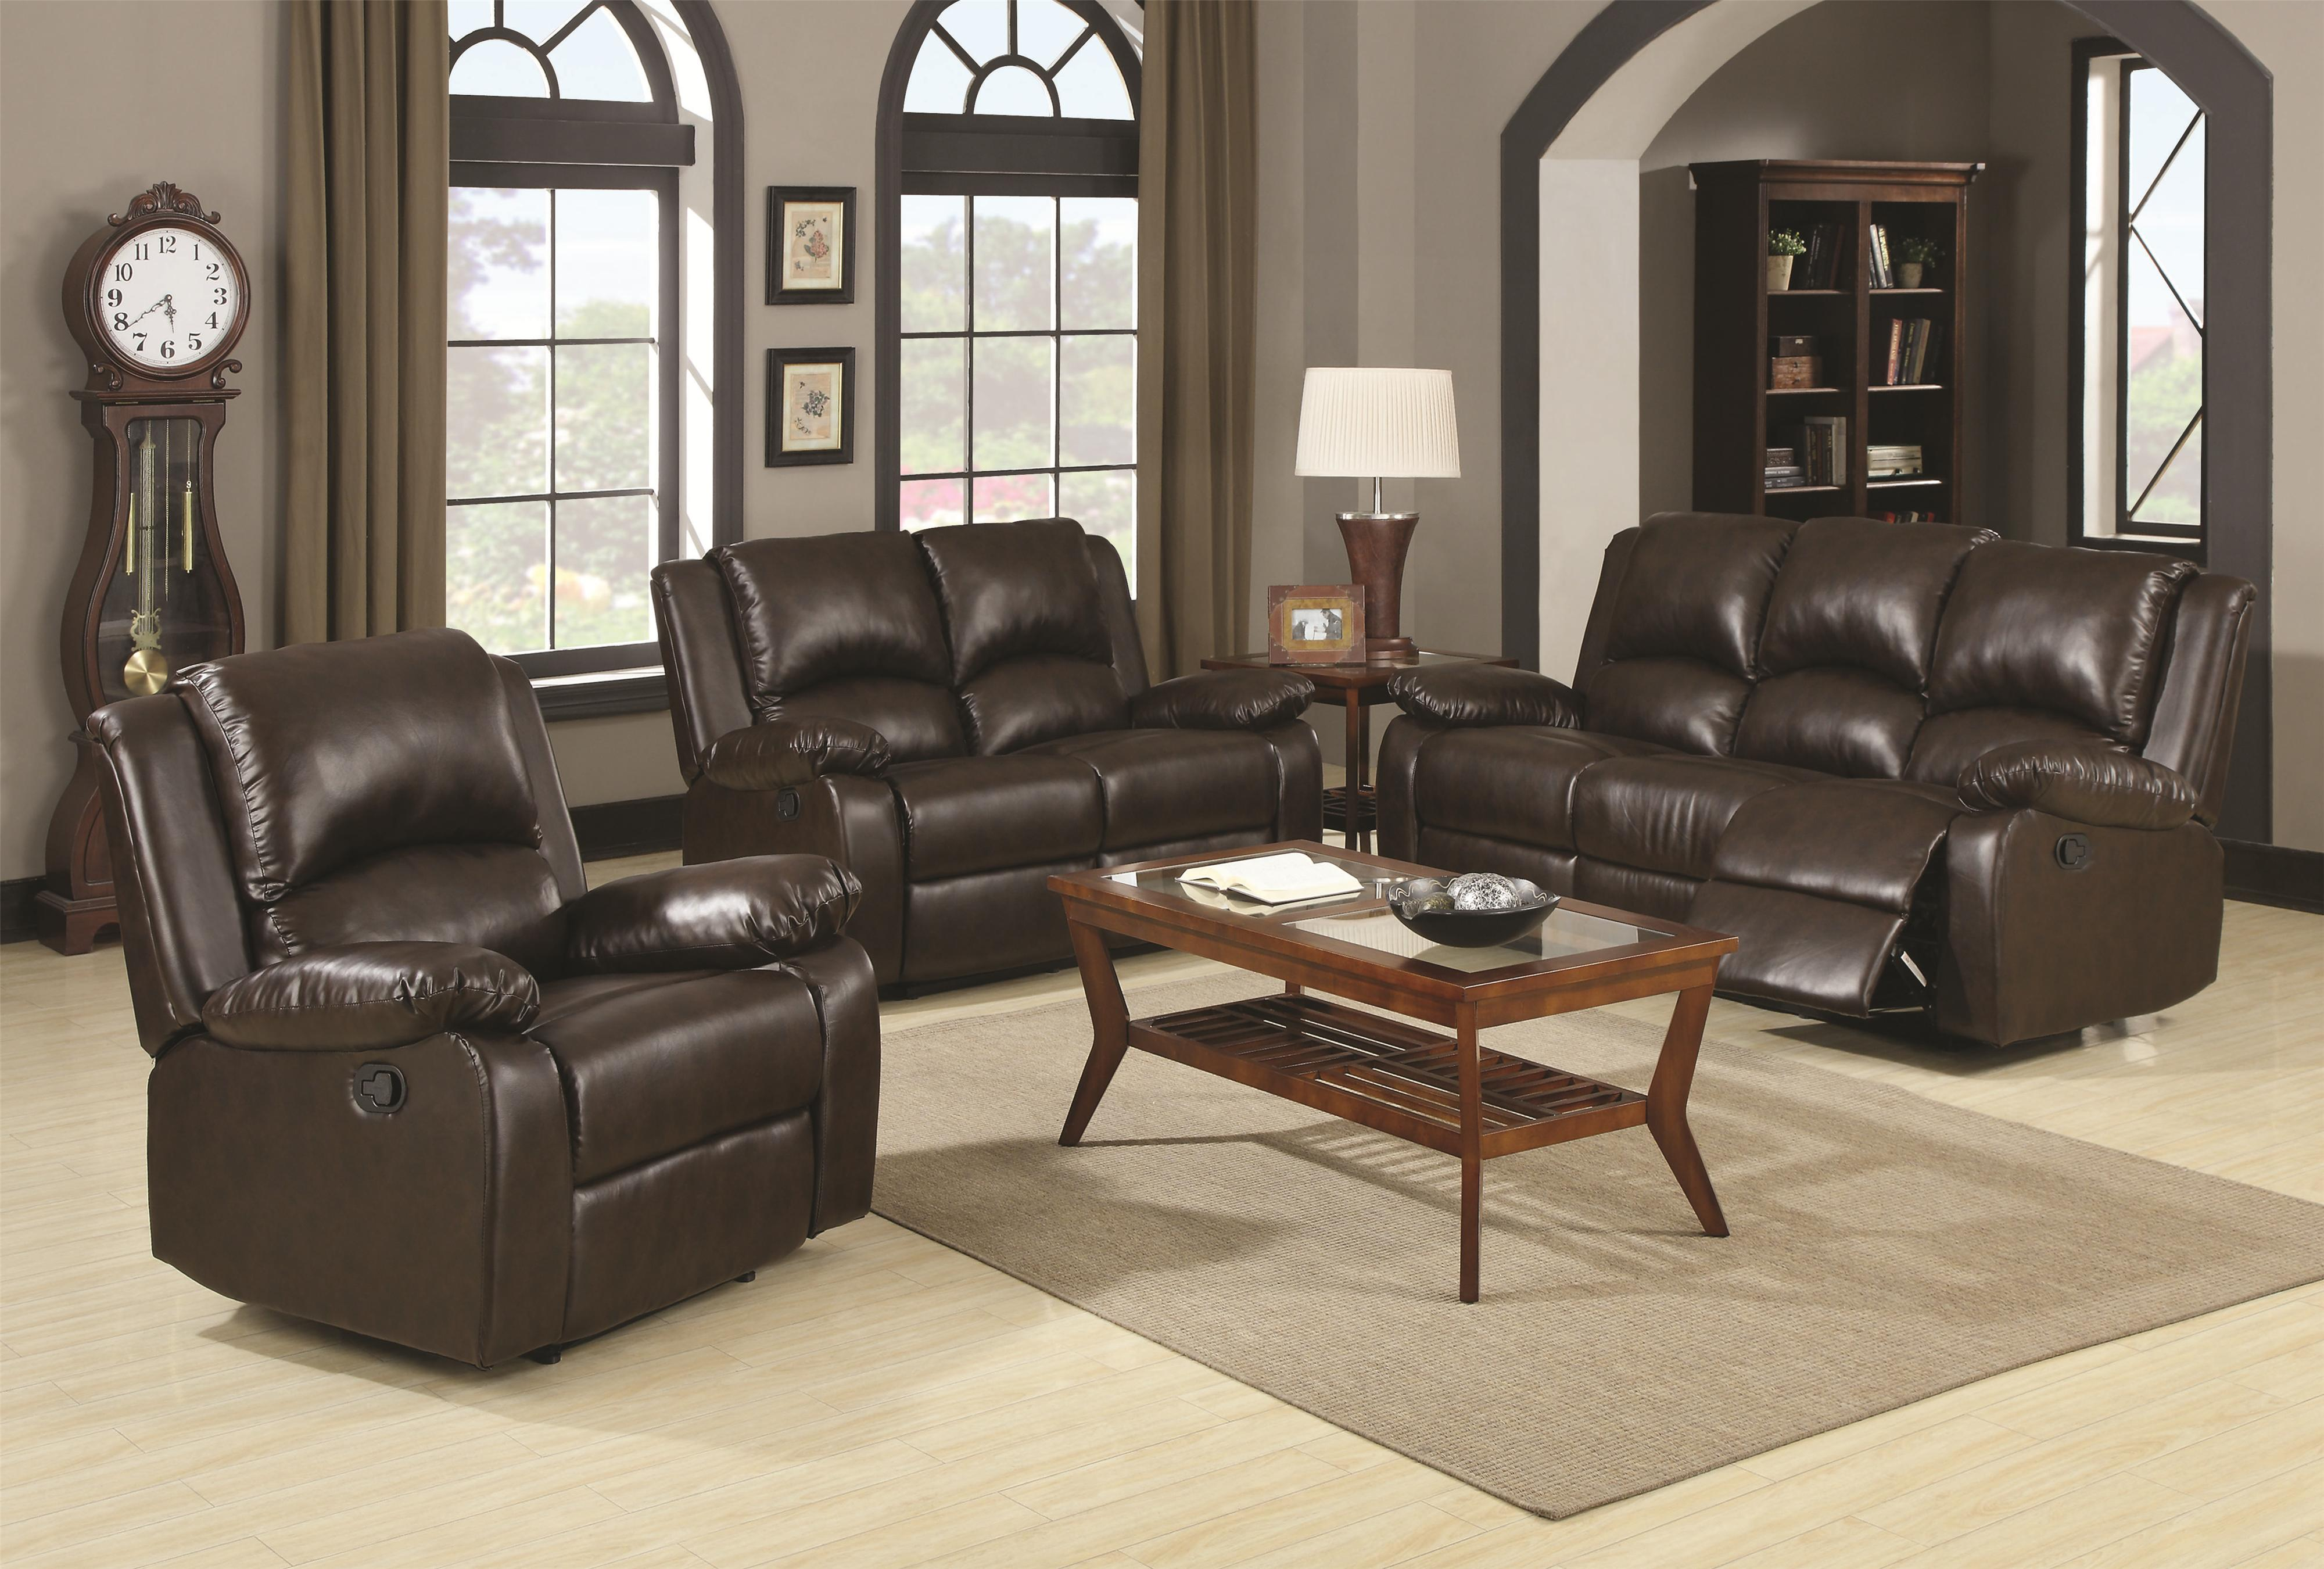 Boston Reclining Living Room Group by Coaster at Northeast Factory Direct